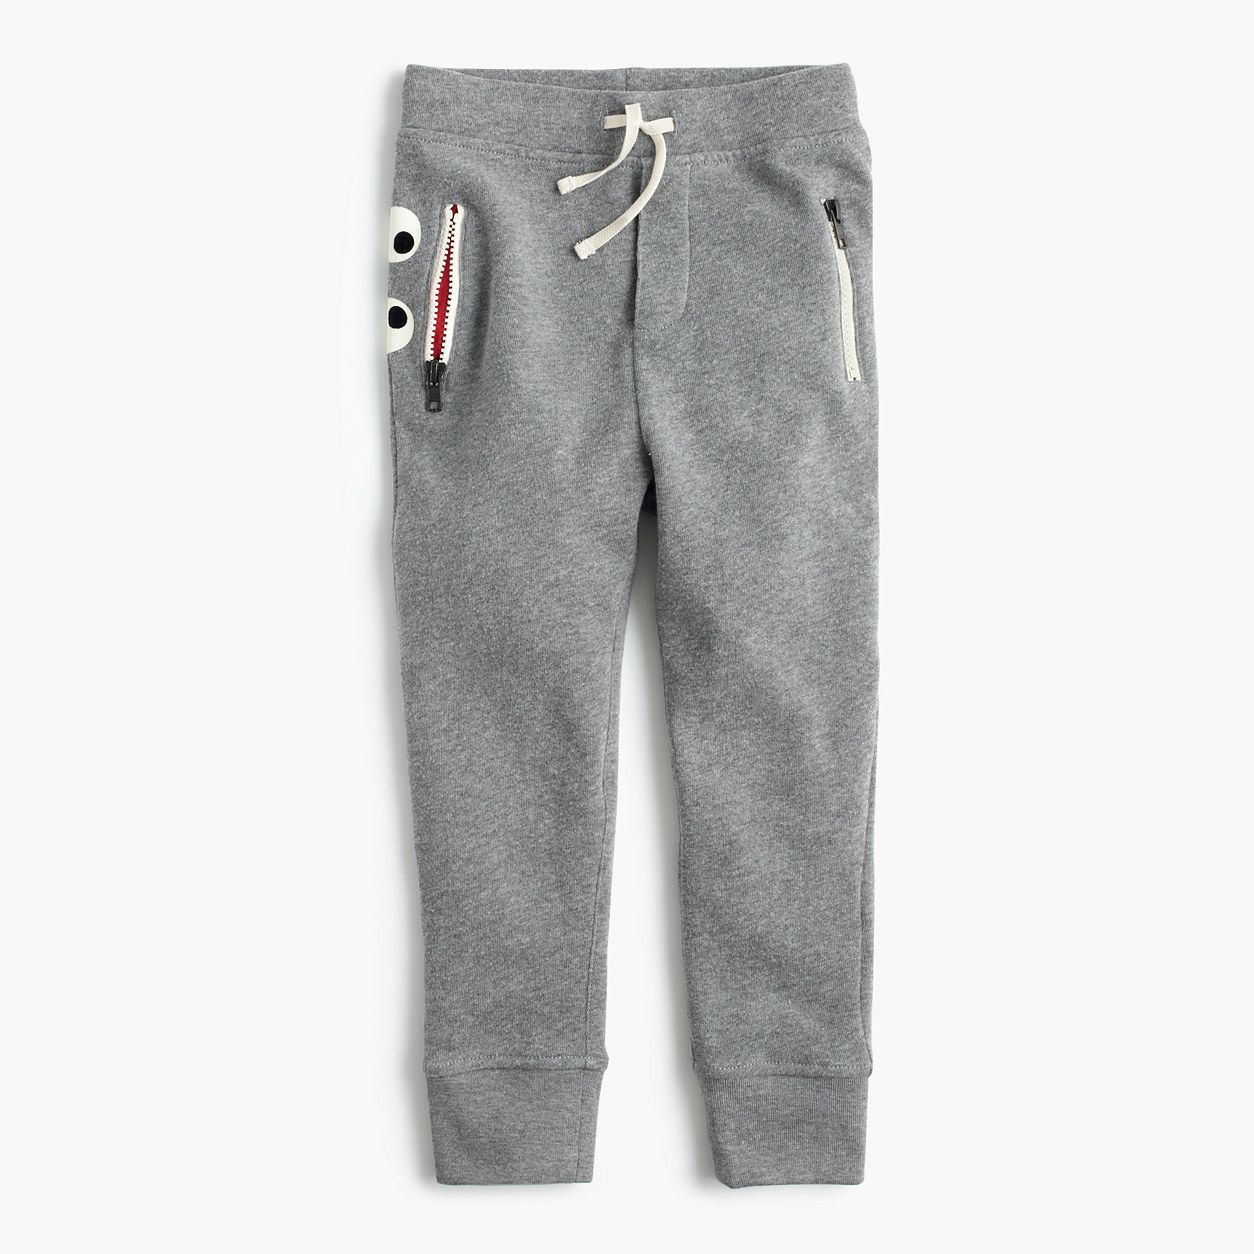 Fox Sweatpants for Boys /& Girls Fleece Active Joggers Elastic Pants